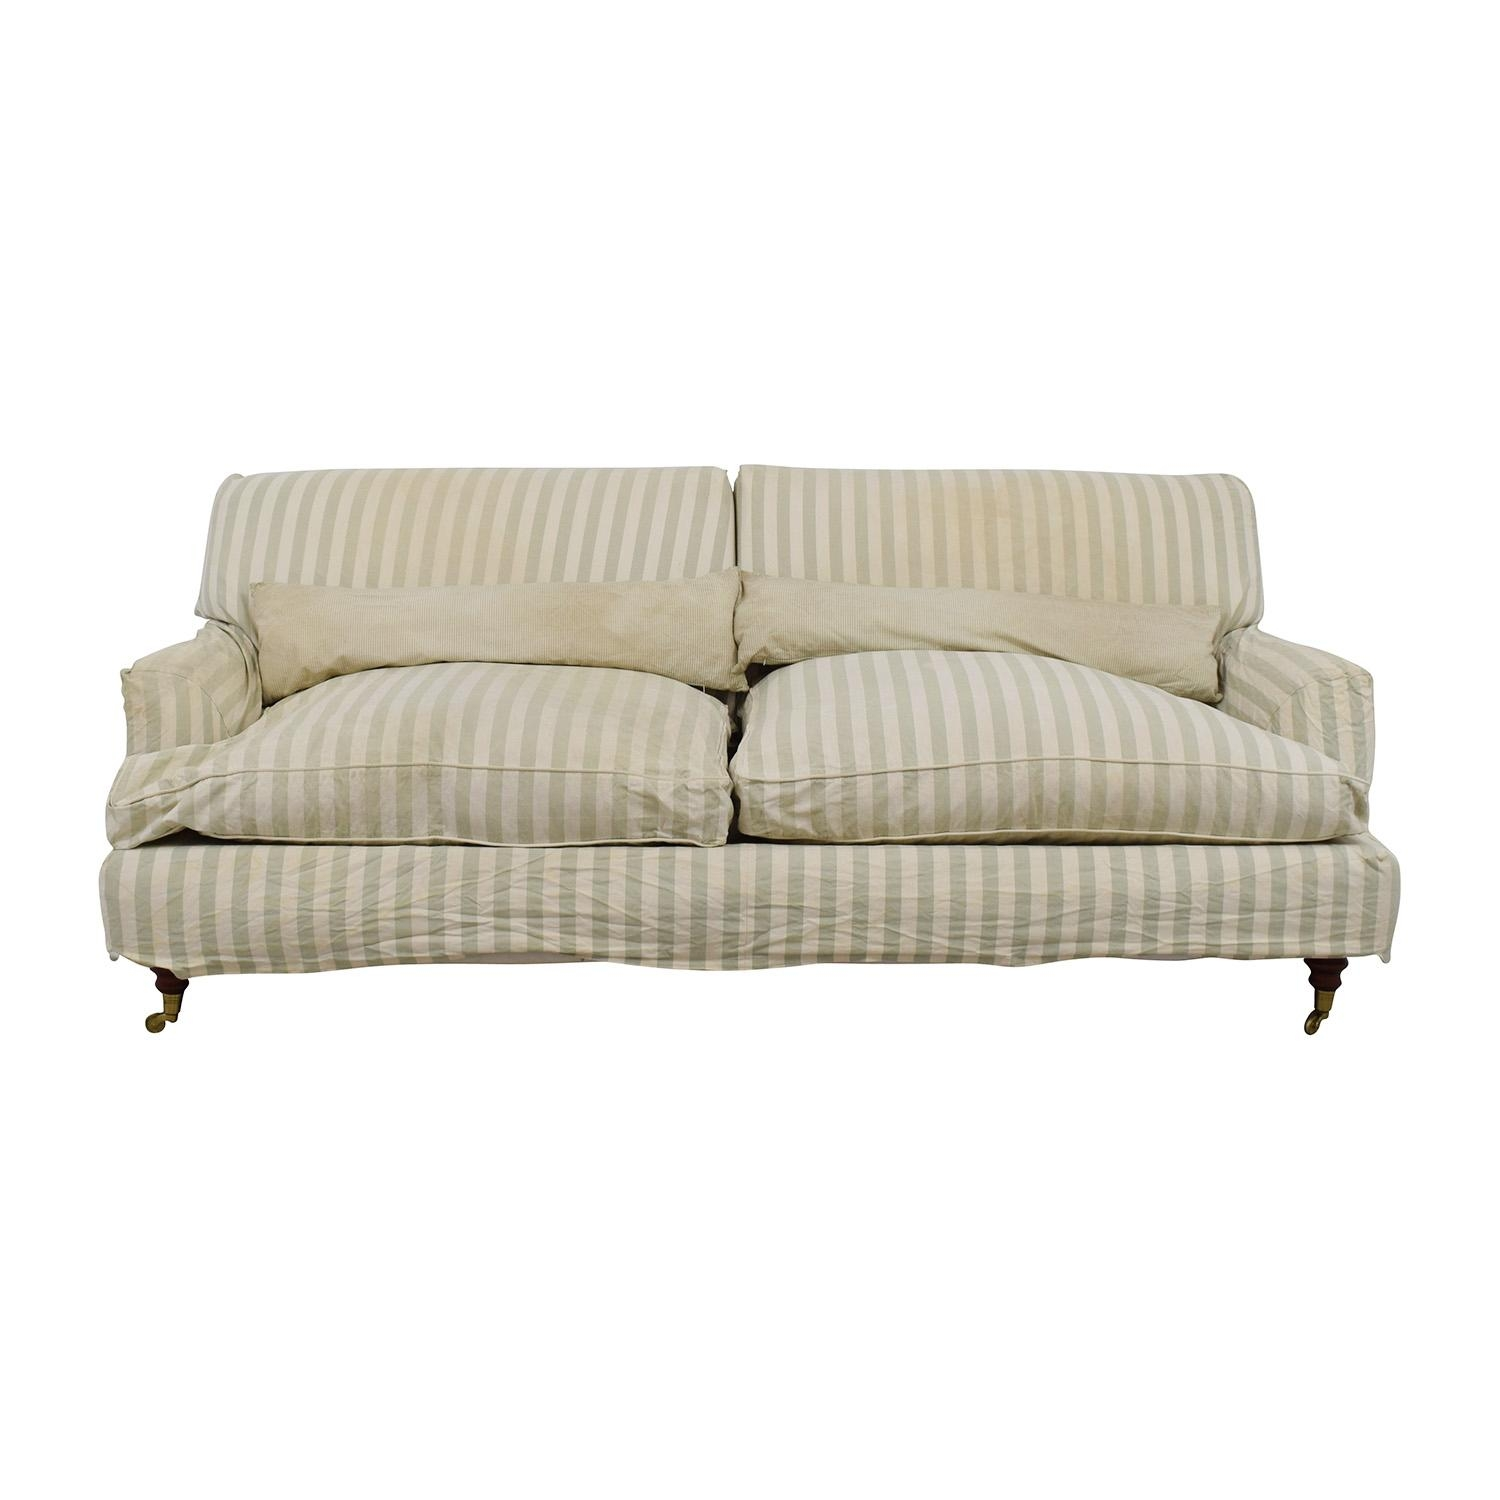 85% Off – Green And White Striped English Roll Arm Sofa / Sofas For Classic English Sofas (Photo 2 of 21)